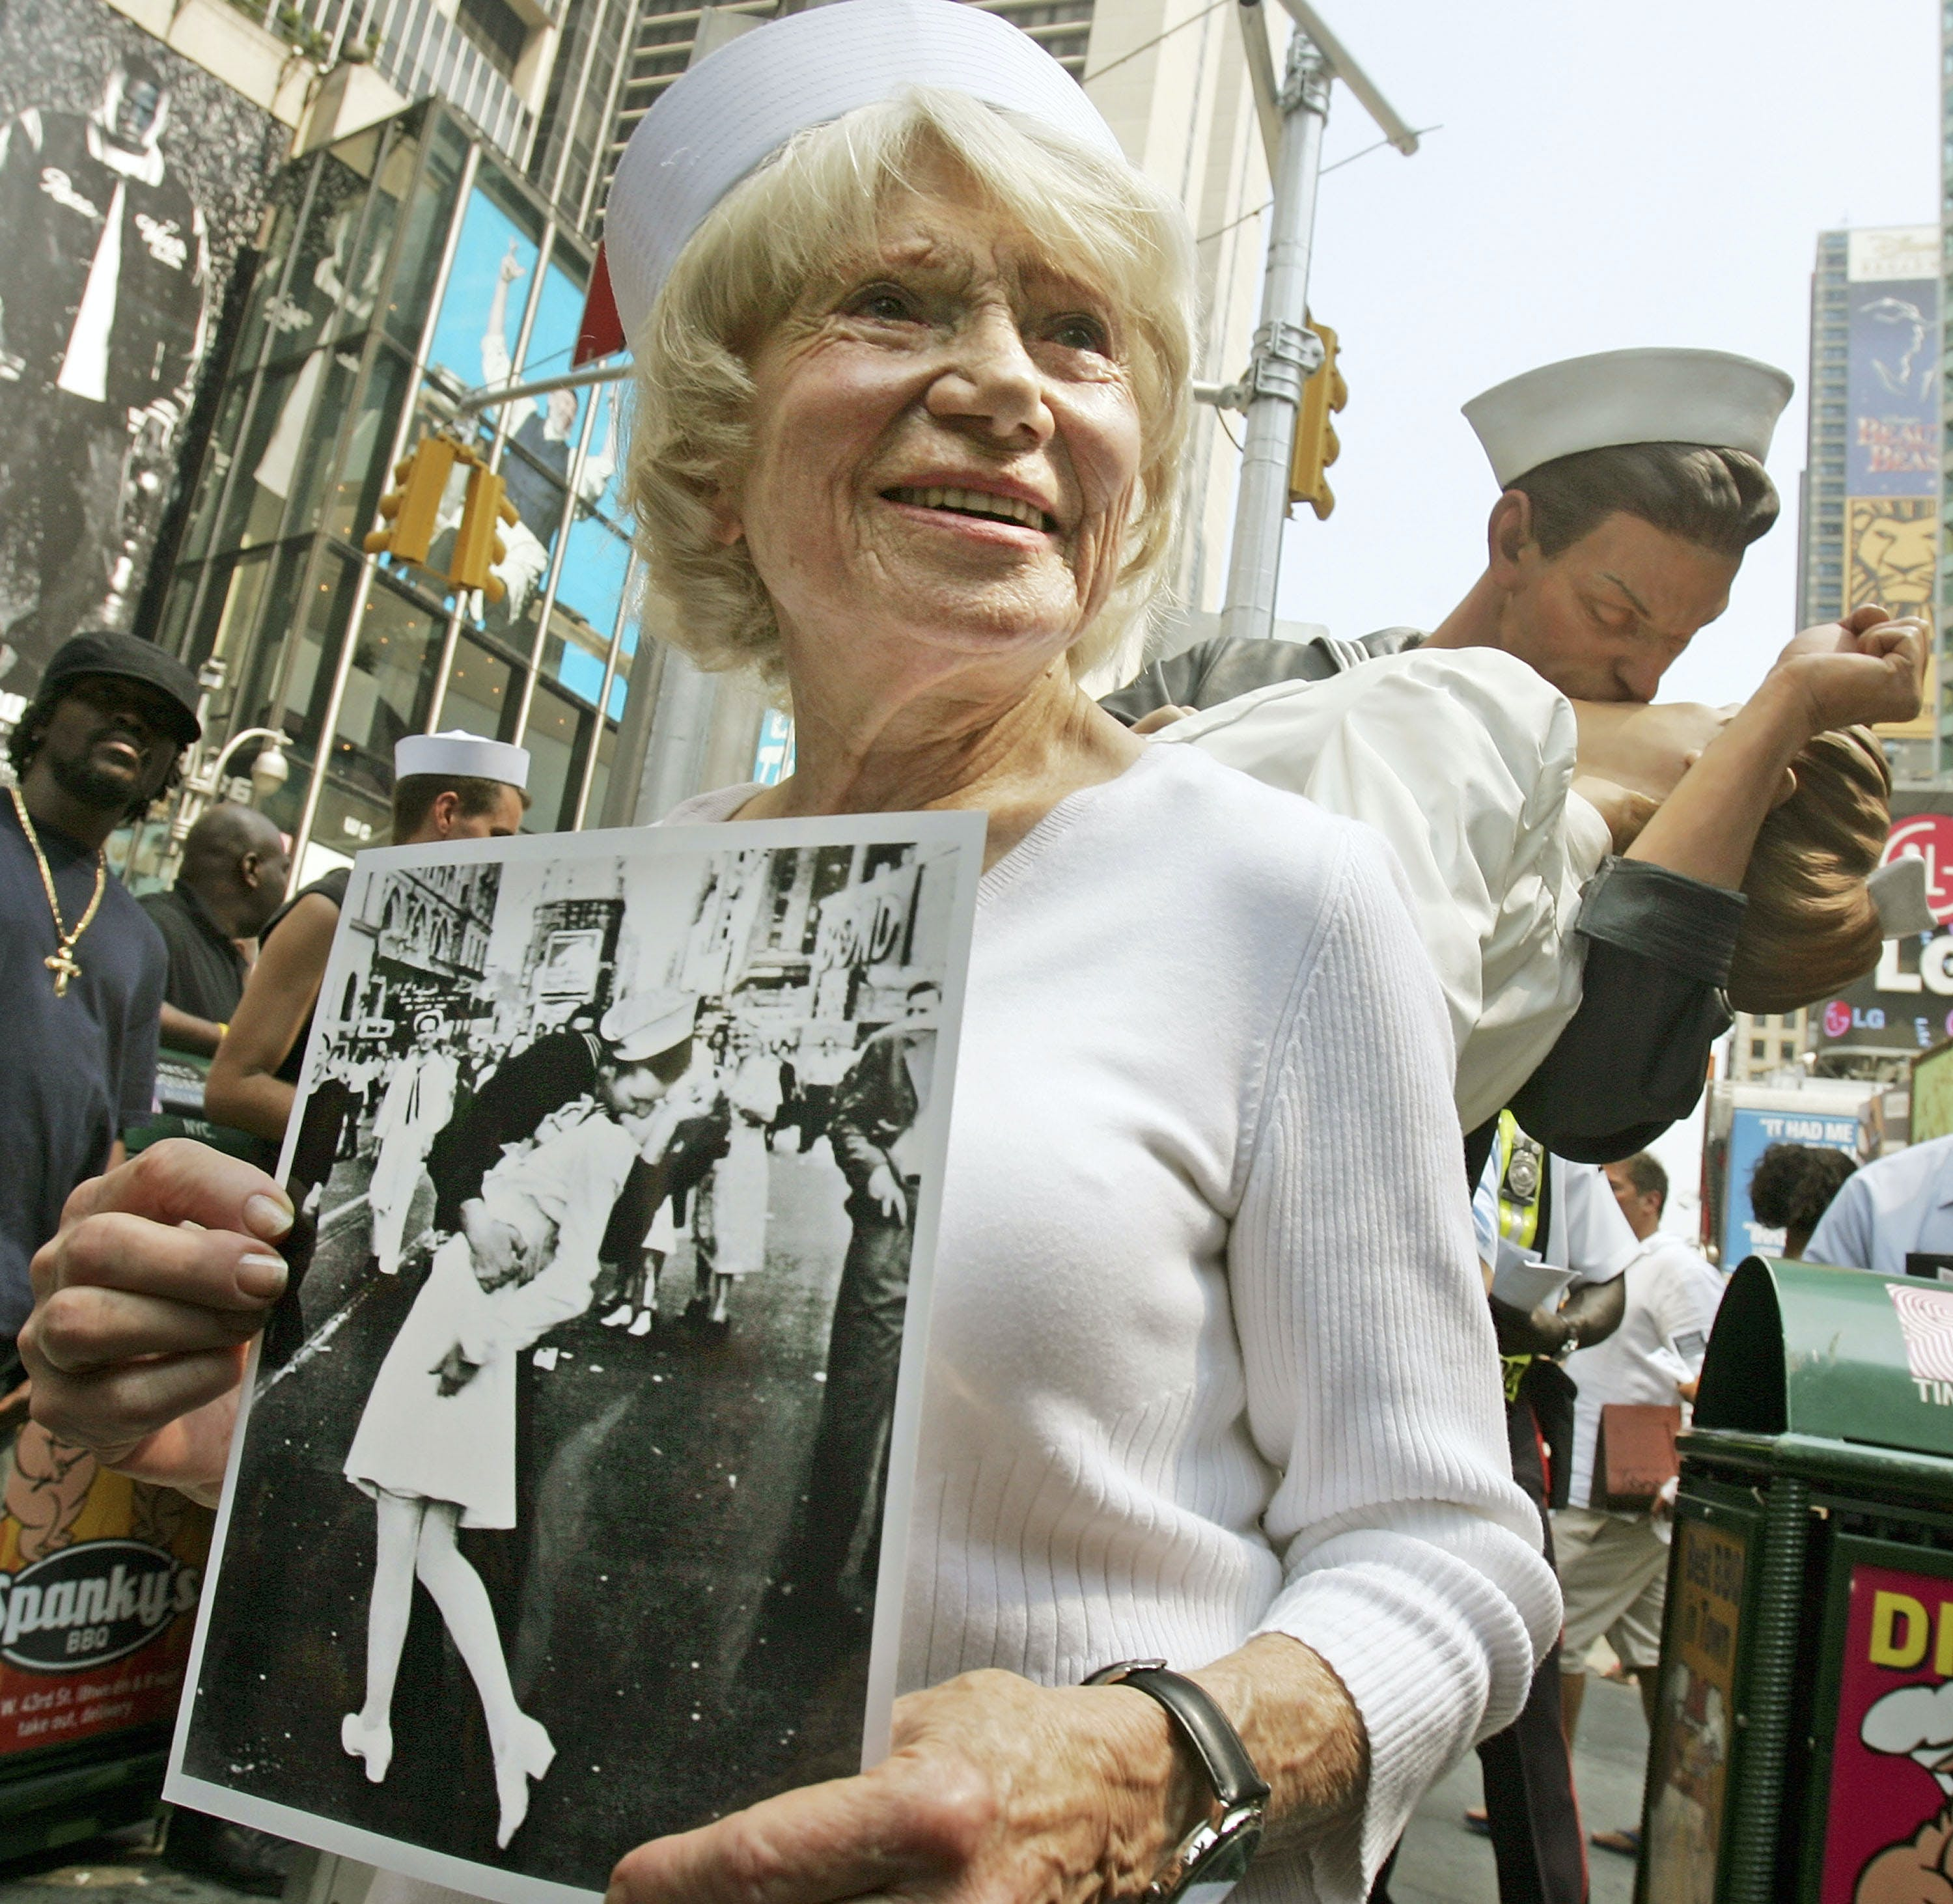 Eighty six-year-old Edith Shain stands in Times Square in front of a statue of her famous kiss with a sailor on V-J Day at the end of World War II August 11, 2005 in New York City. The famous kiss was photographed by Alfred Eisenstaedt and the unveiling of the statue coincides with the 60th anniversary of the end of World War II on August 14, 1945. The sailor in the photograph has never been positively identified.